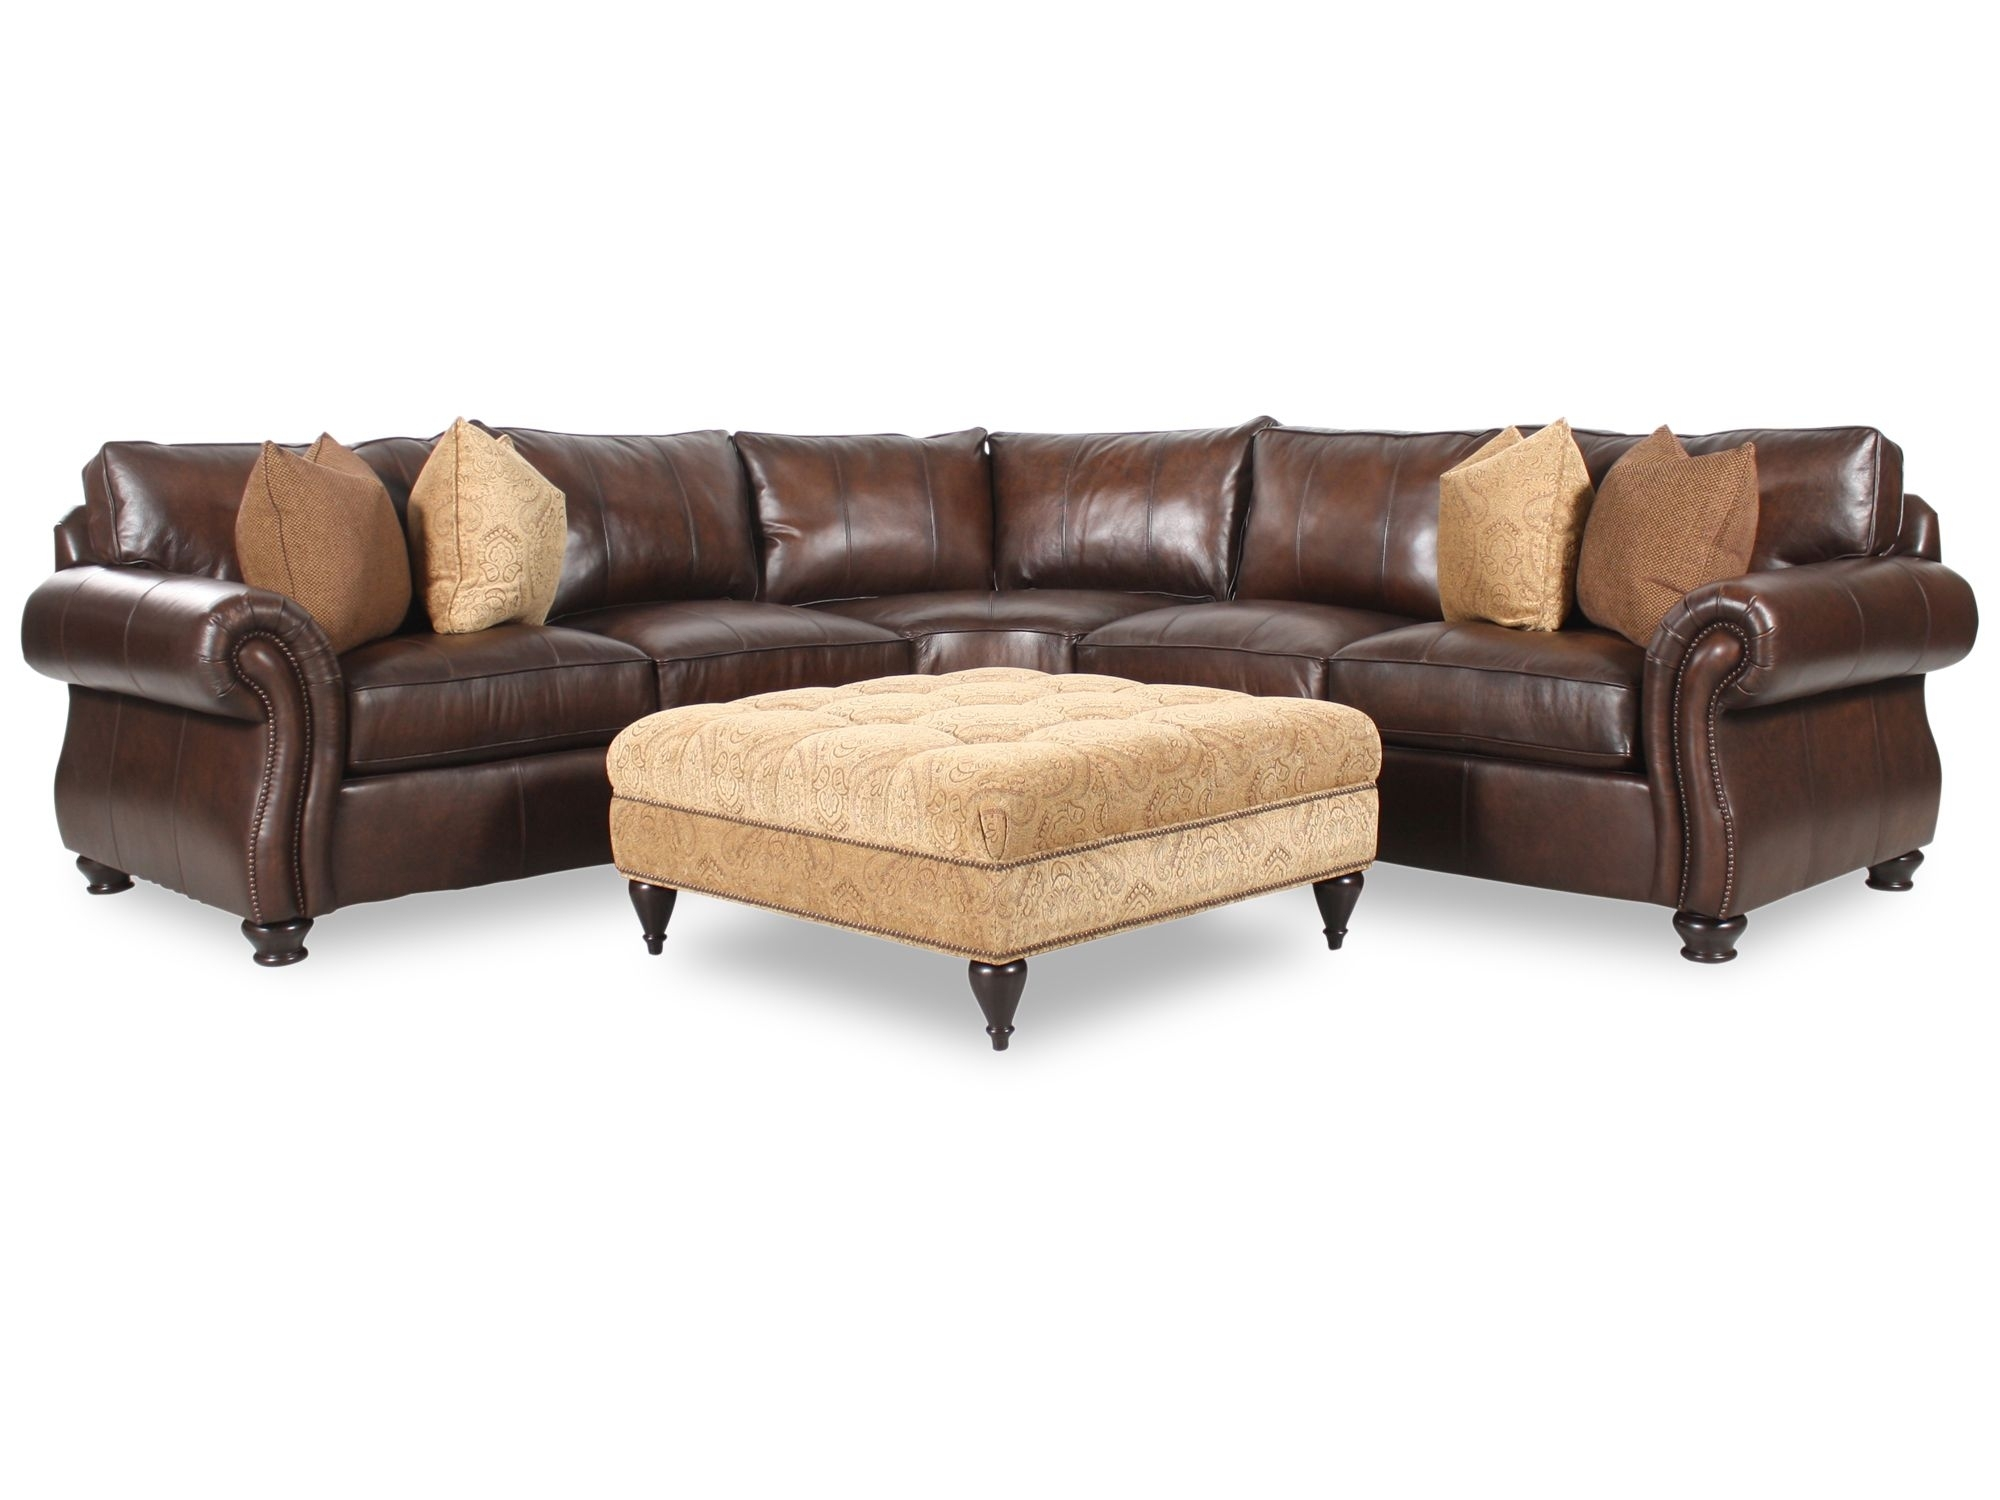 Bernhardt Van Gogh Two Piece Leather Sectional With Square Fabric Regarding Leather Sectional Sofas With Ottoman (View 10 of 15)